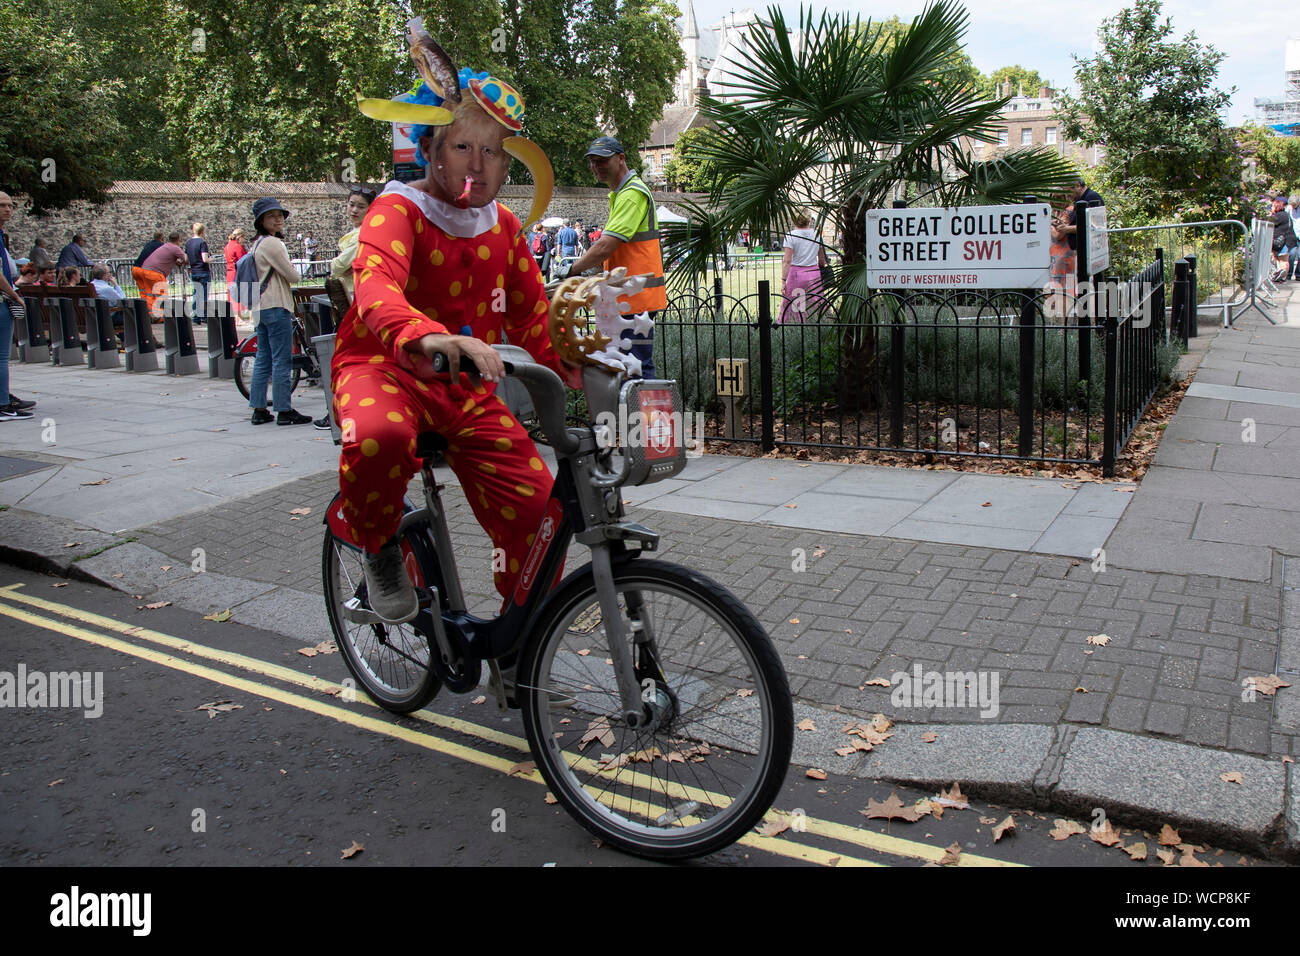 Clown Cycle Stock Photos & Clown Cycle Stock Images - Alamy